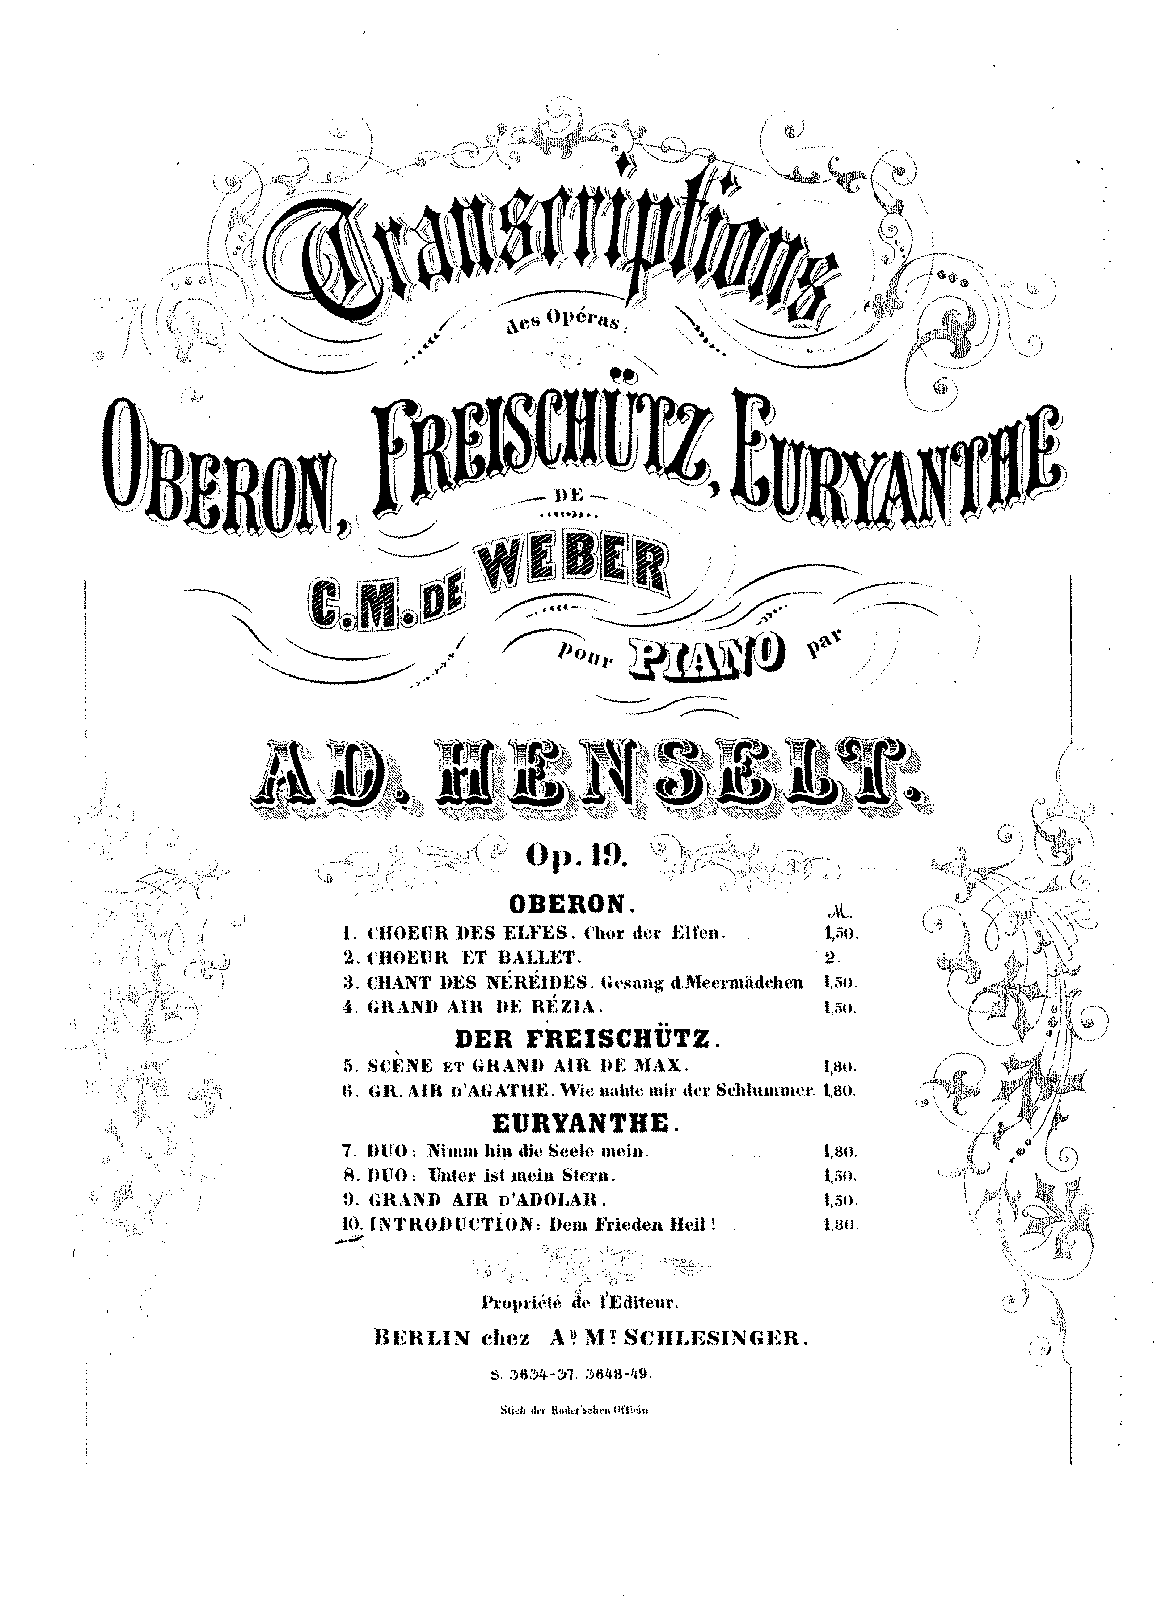 Henselt op.19 Nr.10 Euryanthe Introduction.pdf